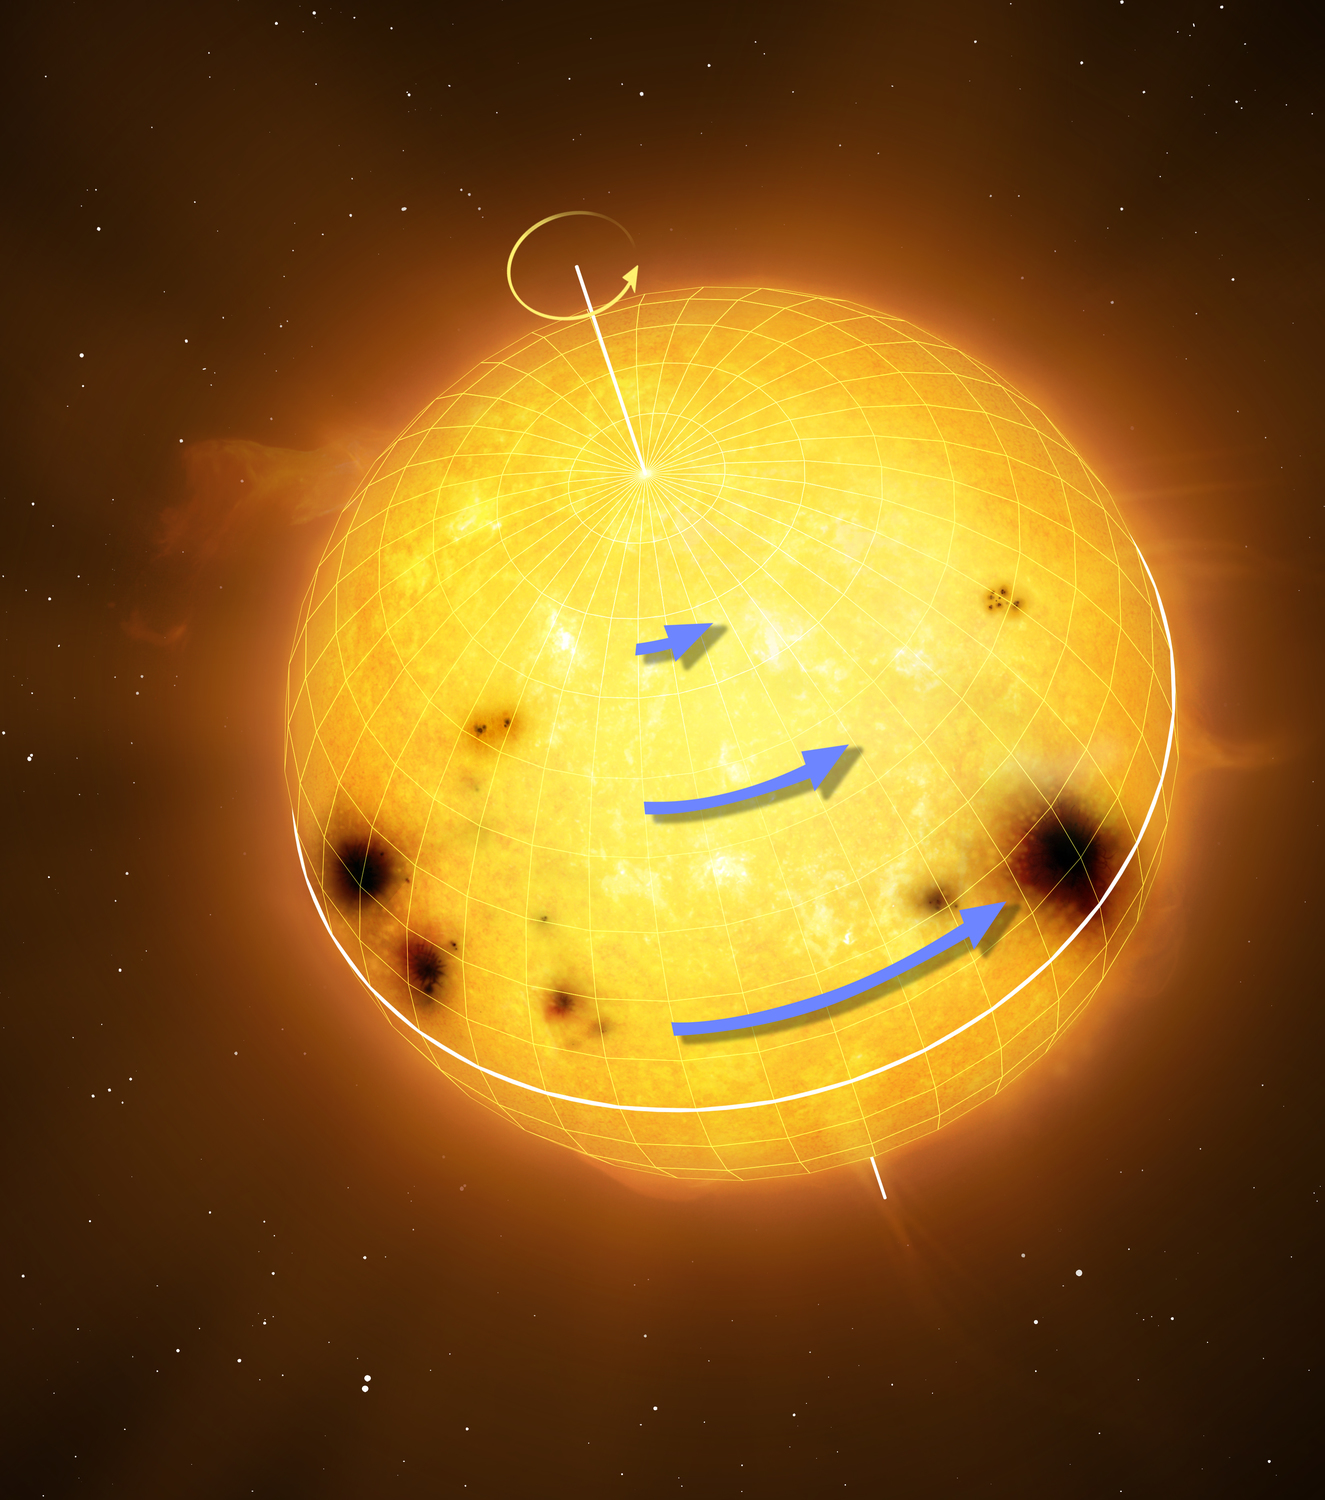 Sun-like stars rotate differentially, with the equator rotating faster than the higher latitudes. The blue arrows in the figure represent the rotation speed. Differential rotation is thought to be an essential ingredient for generating magnetic activity and starspots.